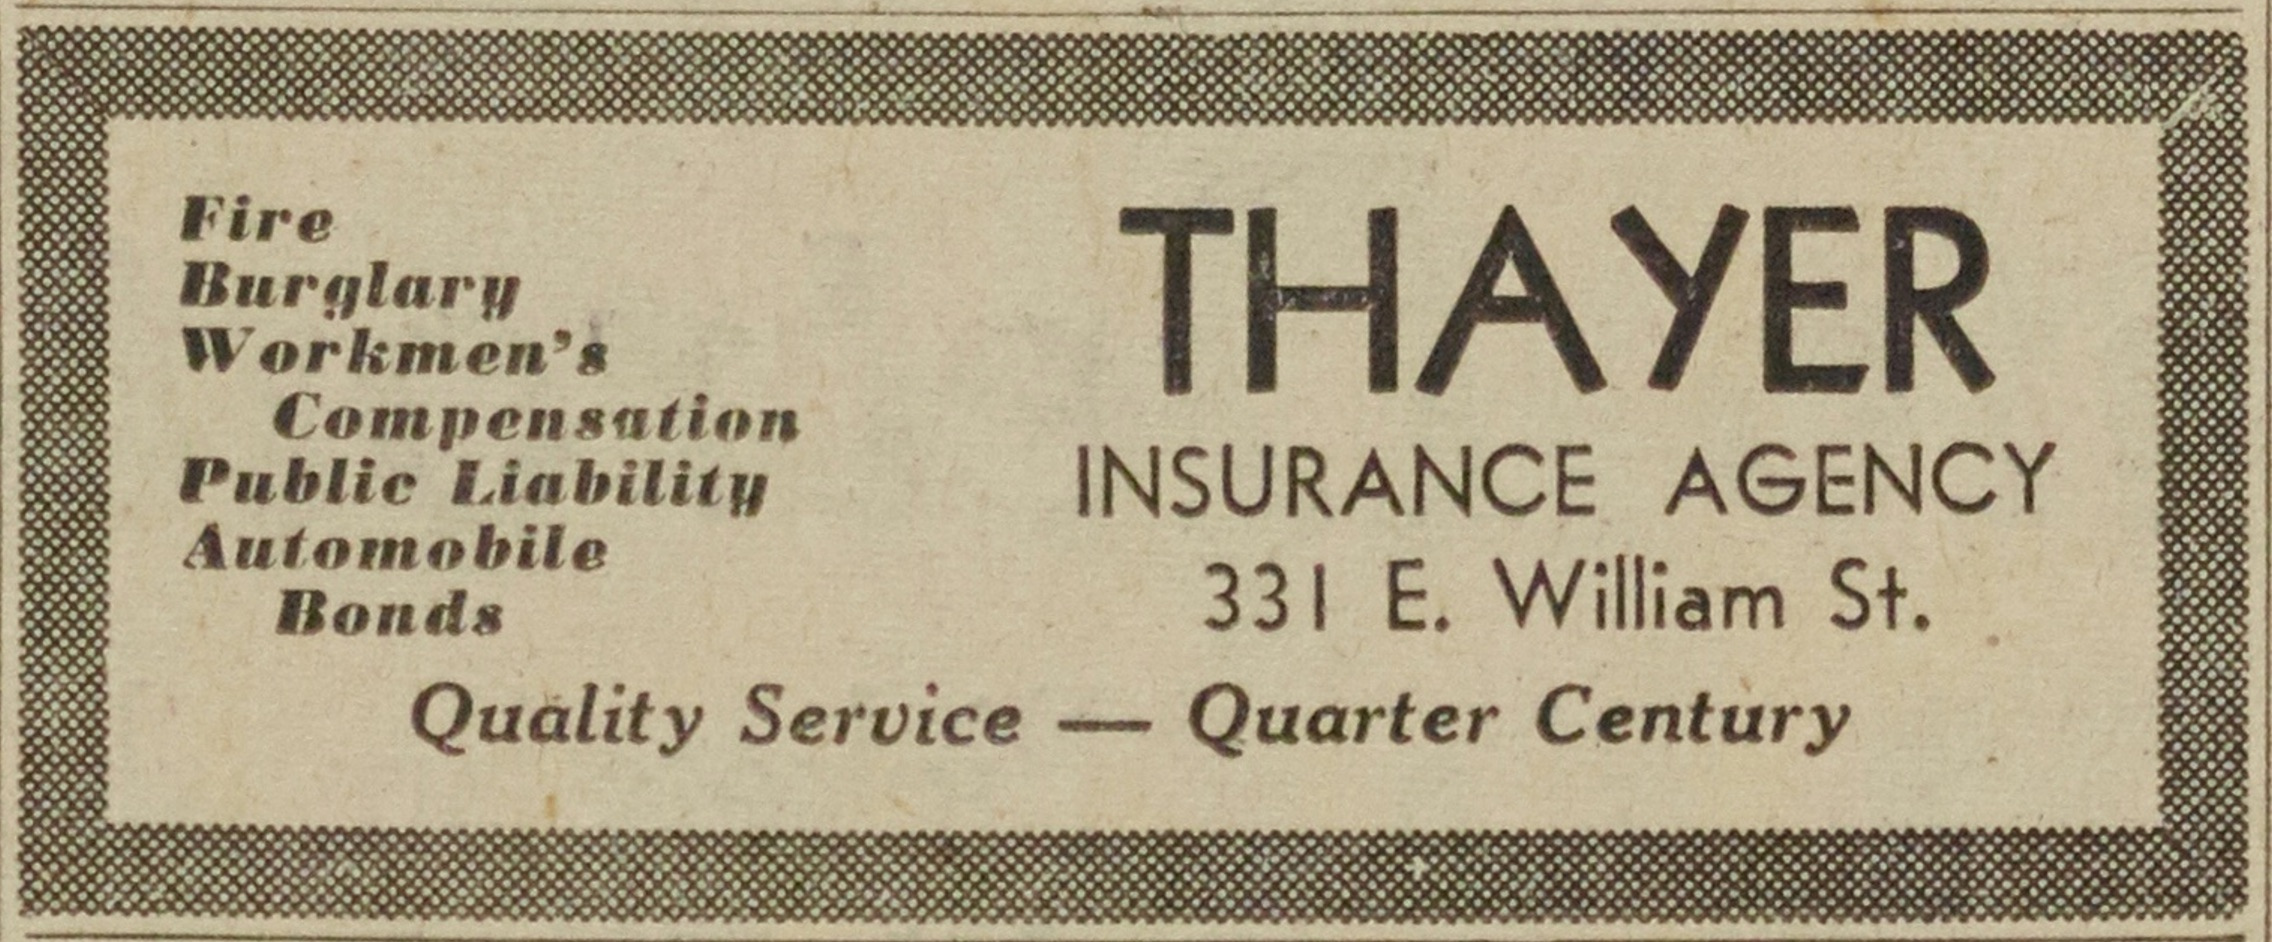 Thayer Insurance Agency image